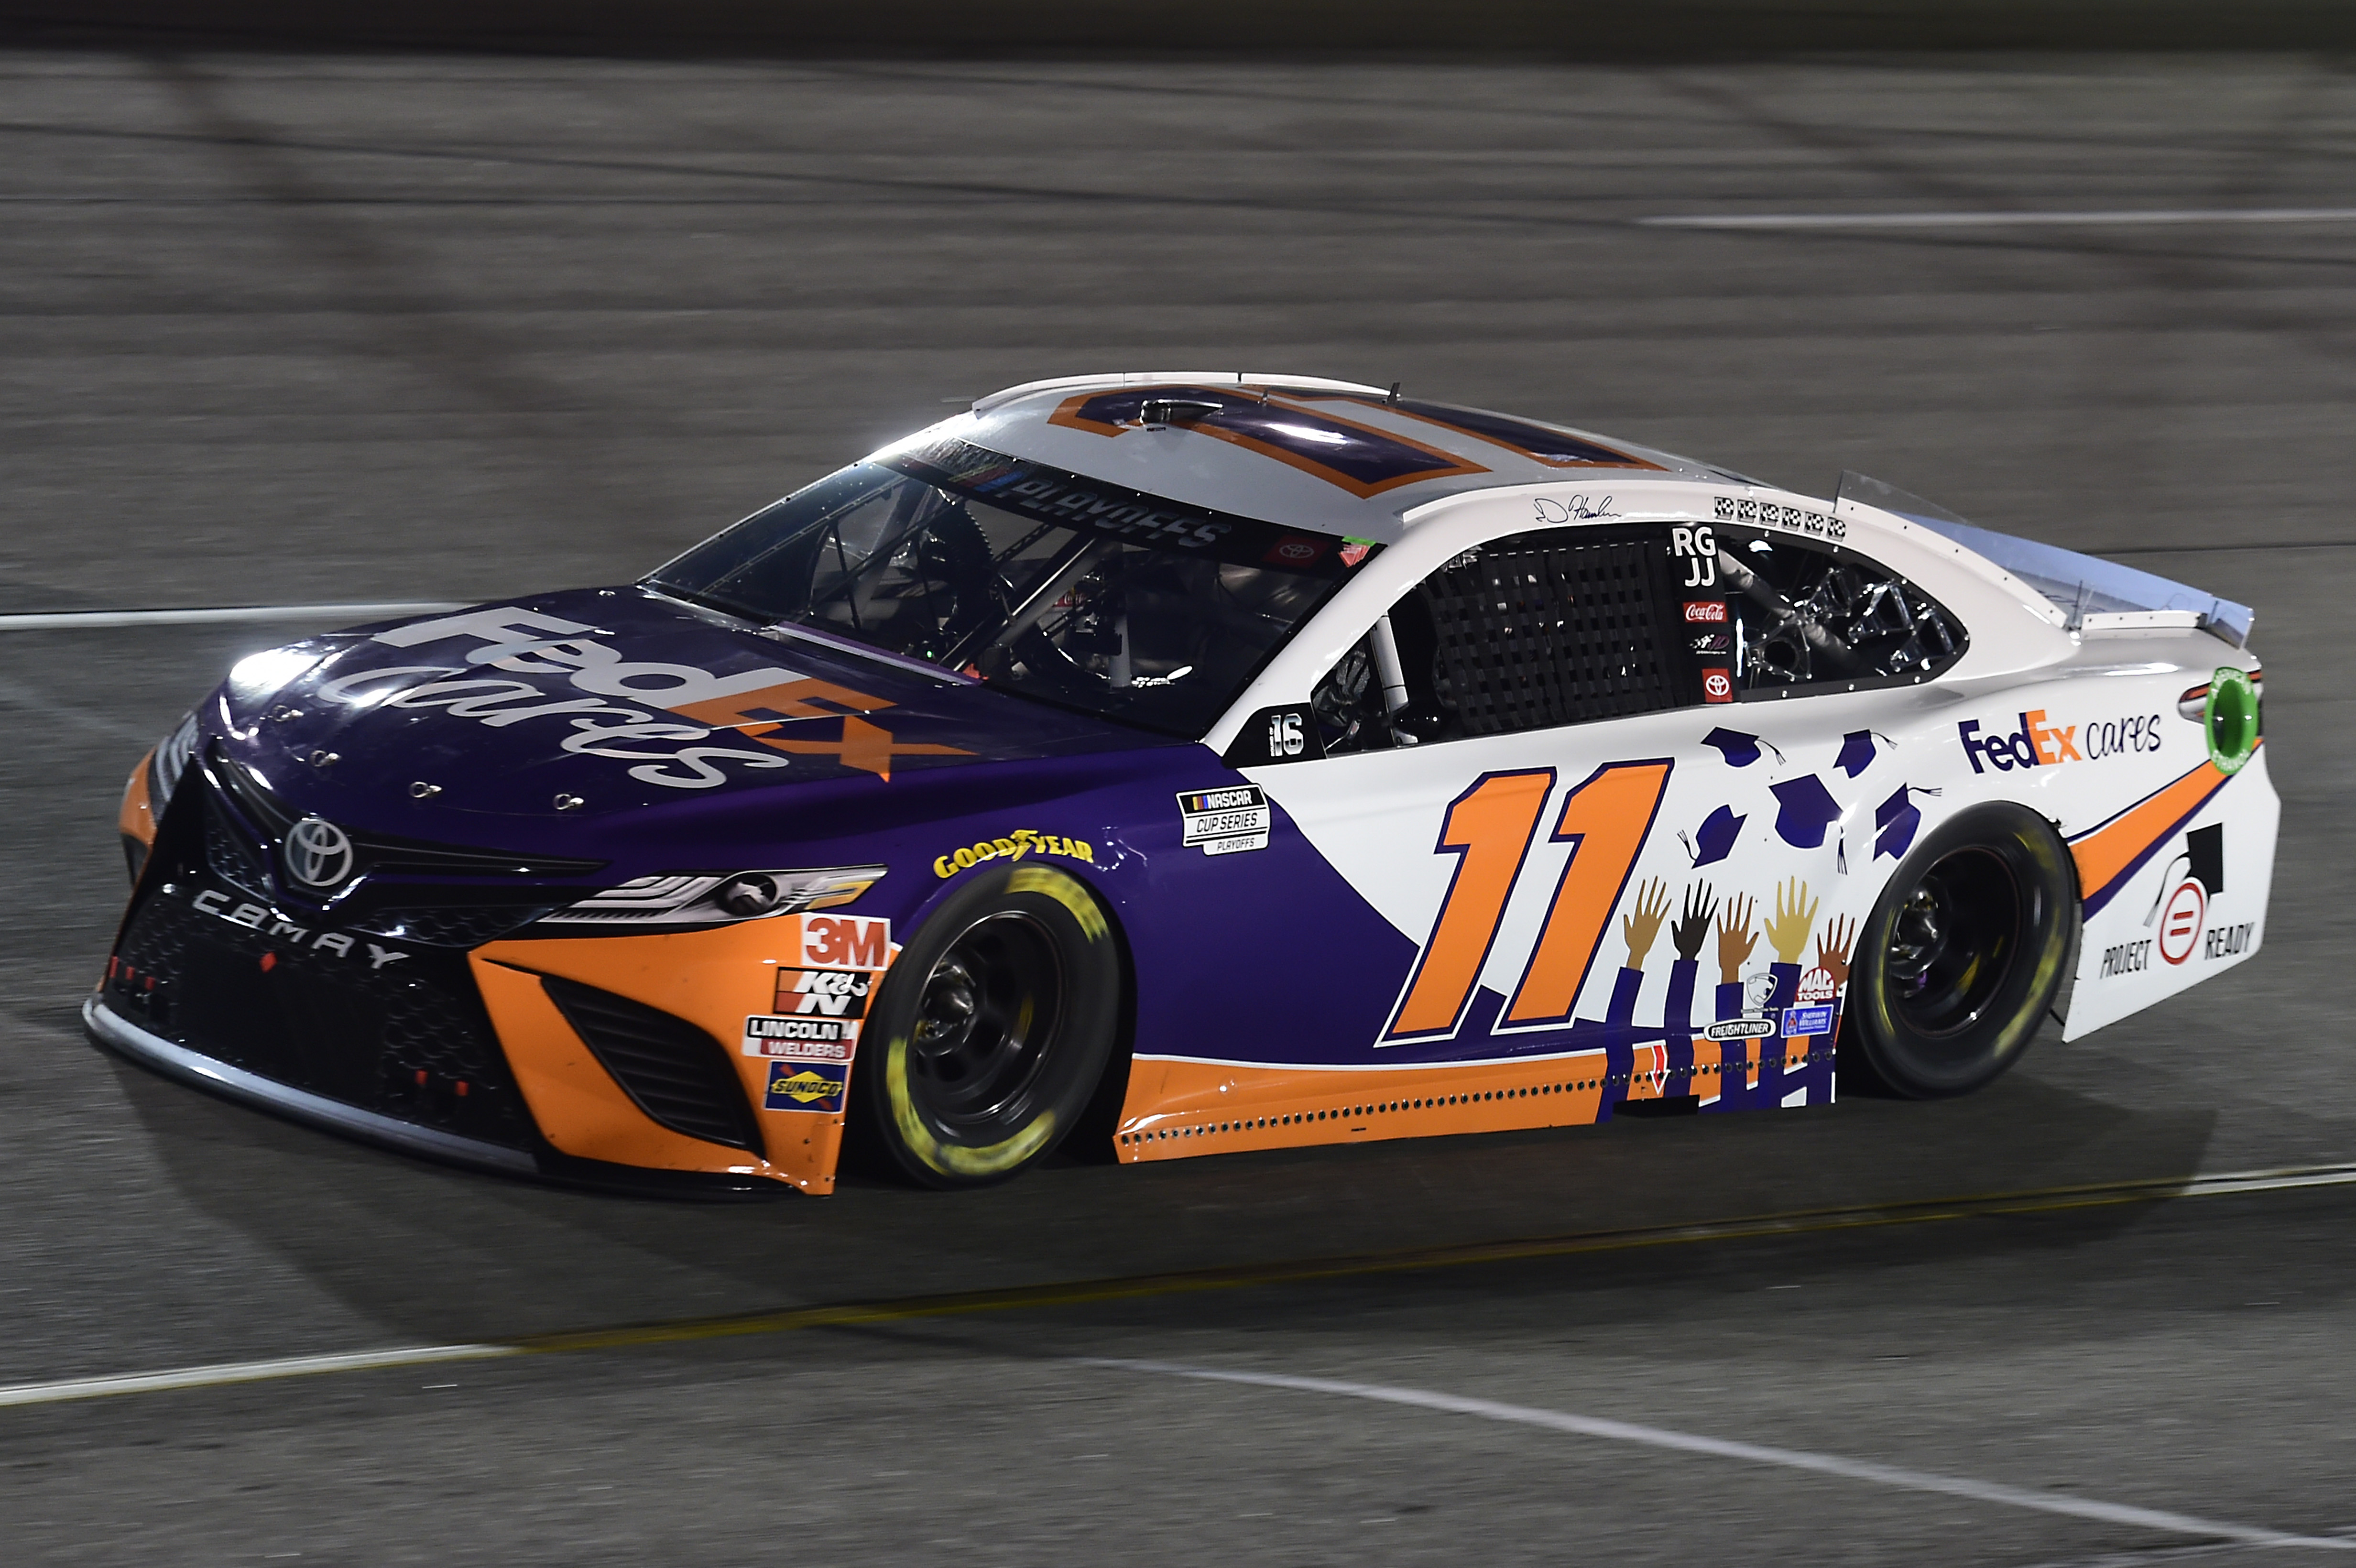 Denny Hamlin, driver of the #11 FedEx Cars Toyota, drives during the NASCAR Cup Series Federated Auto Parts 400 at Richmond Raceway on September 12, 2020 in Richmond, Virginia